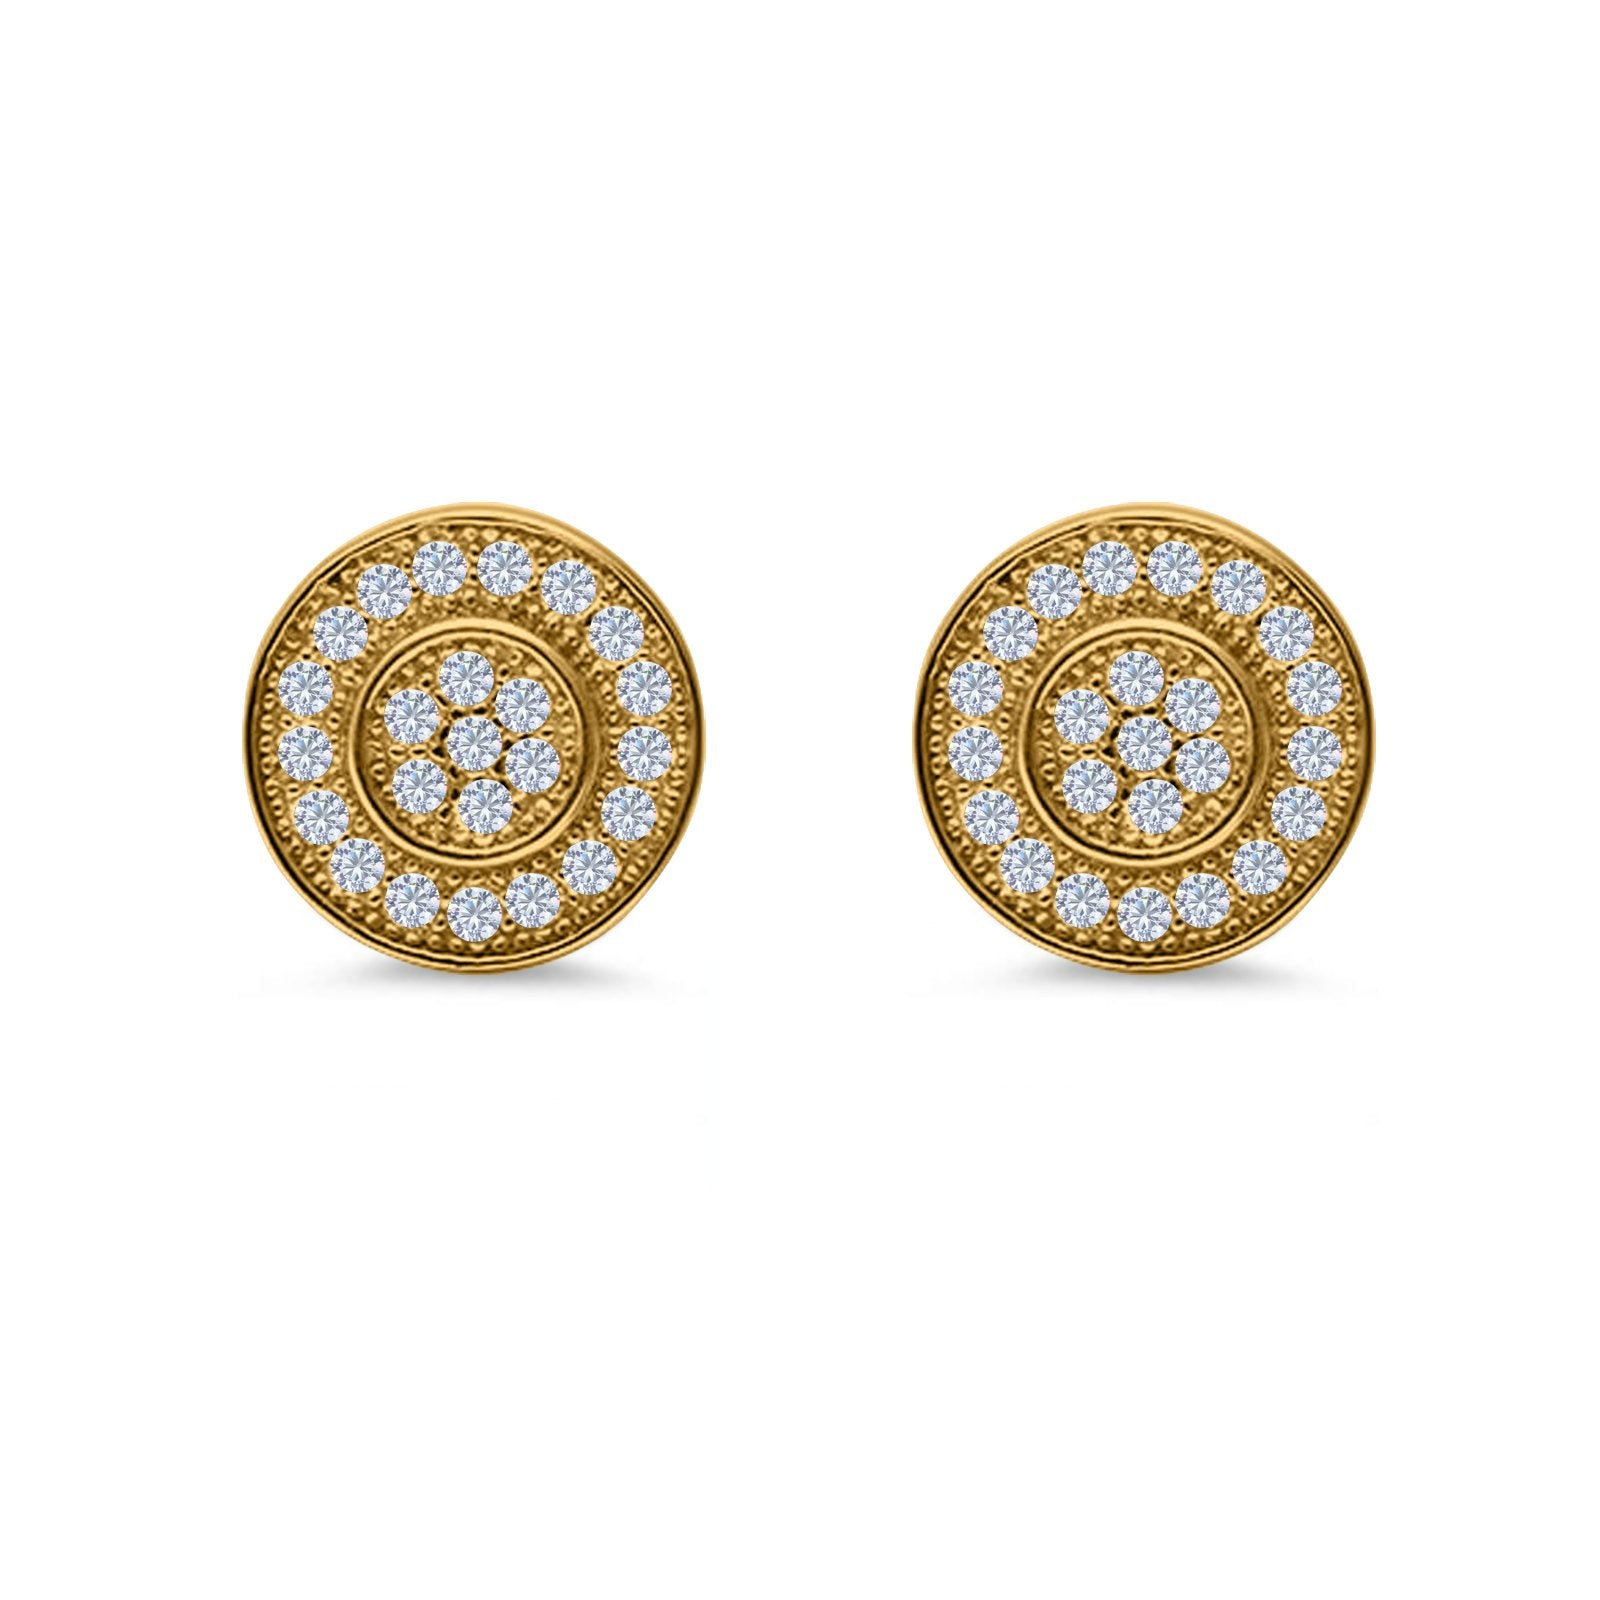 Micro Pave Stud Earrings Round Yellow Tone, Simulated CZ 925 Sterling Silver